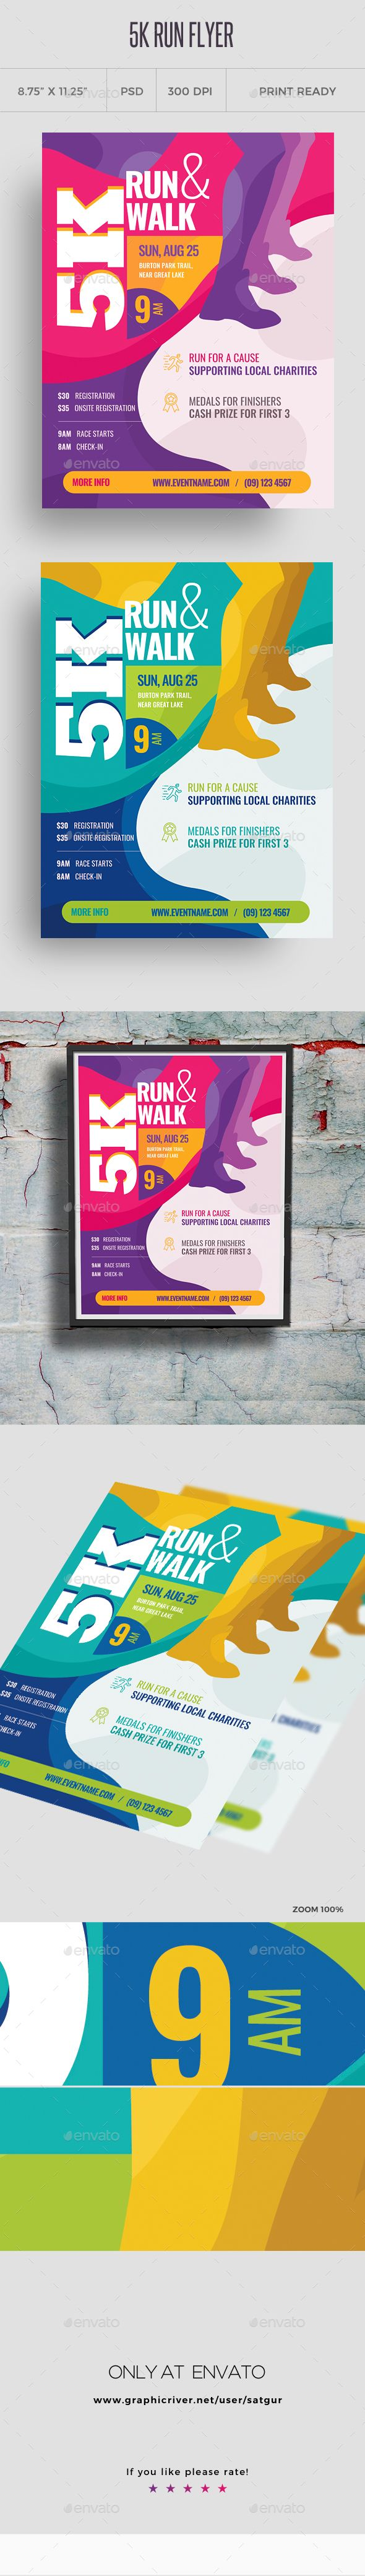 5k run flyer and poster template flyers posters pinterest